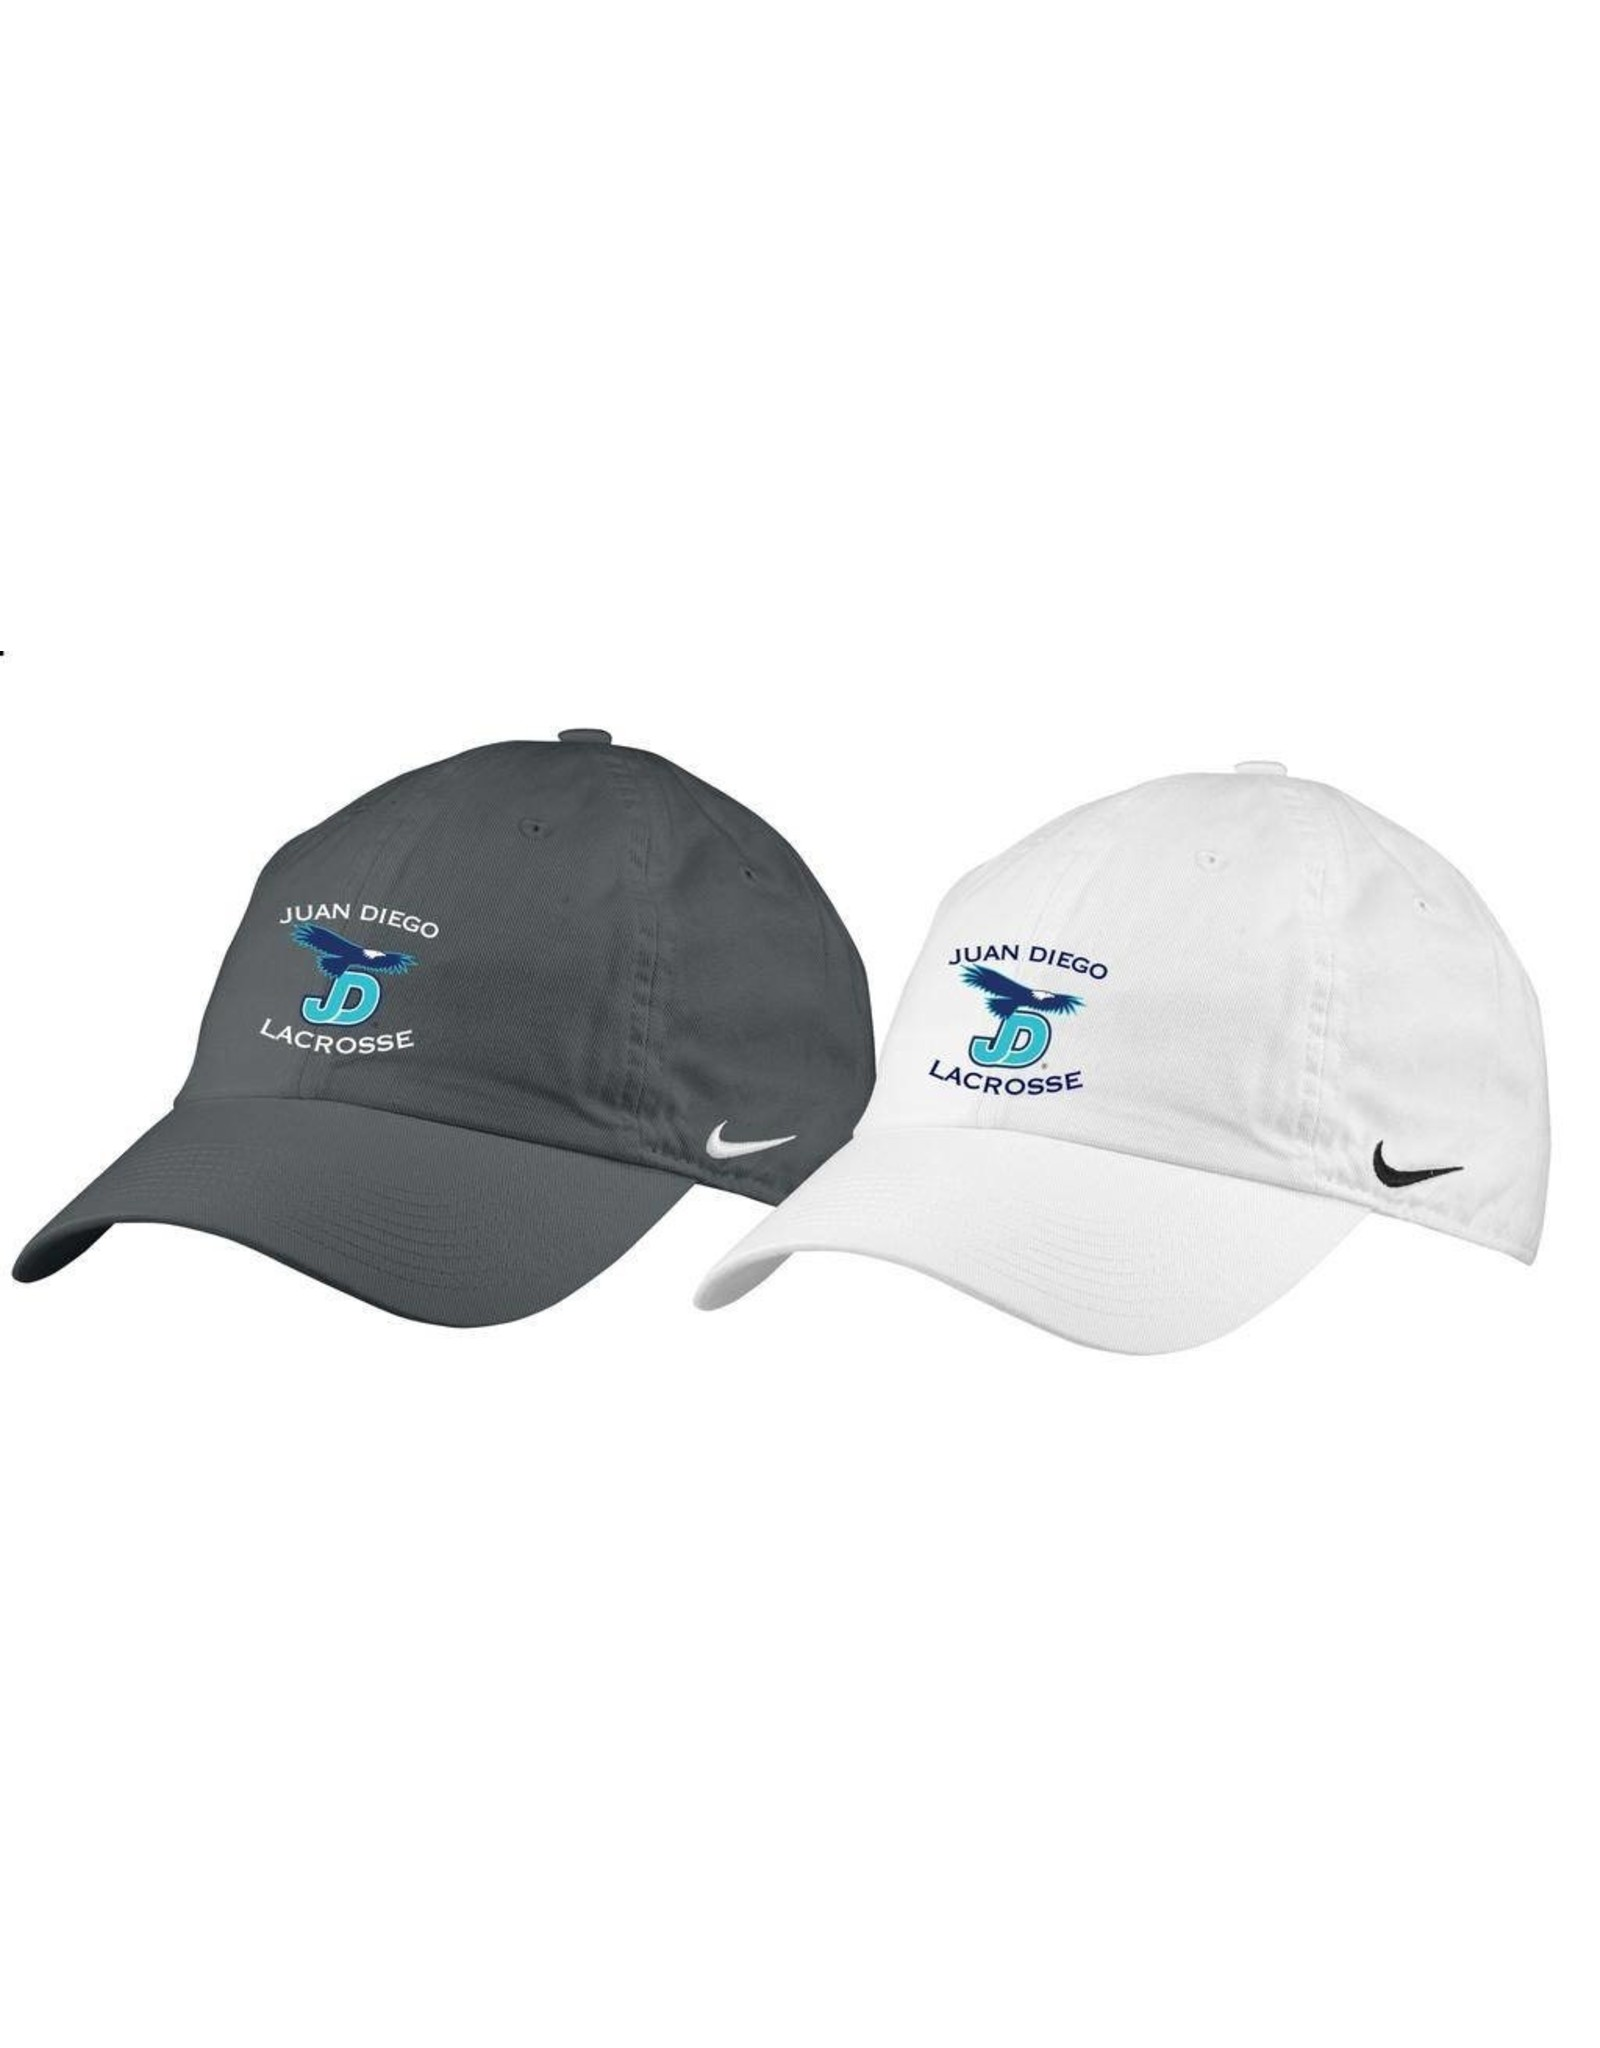 NON-UNIFORM JD Lacrosse Hat in white or grey